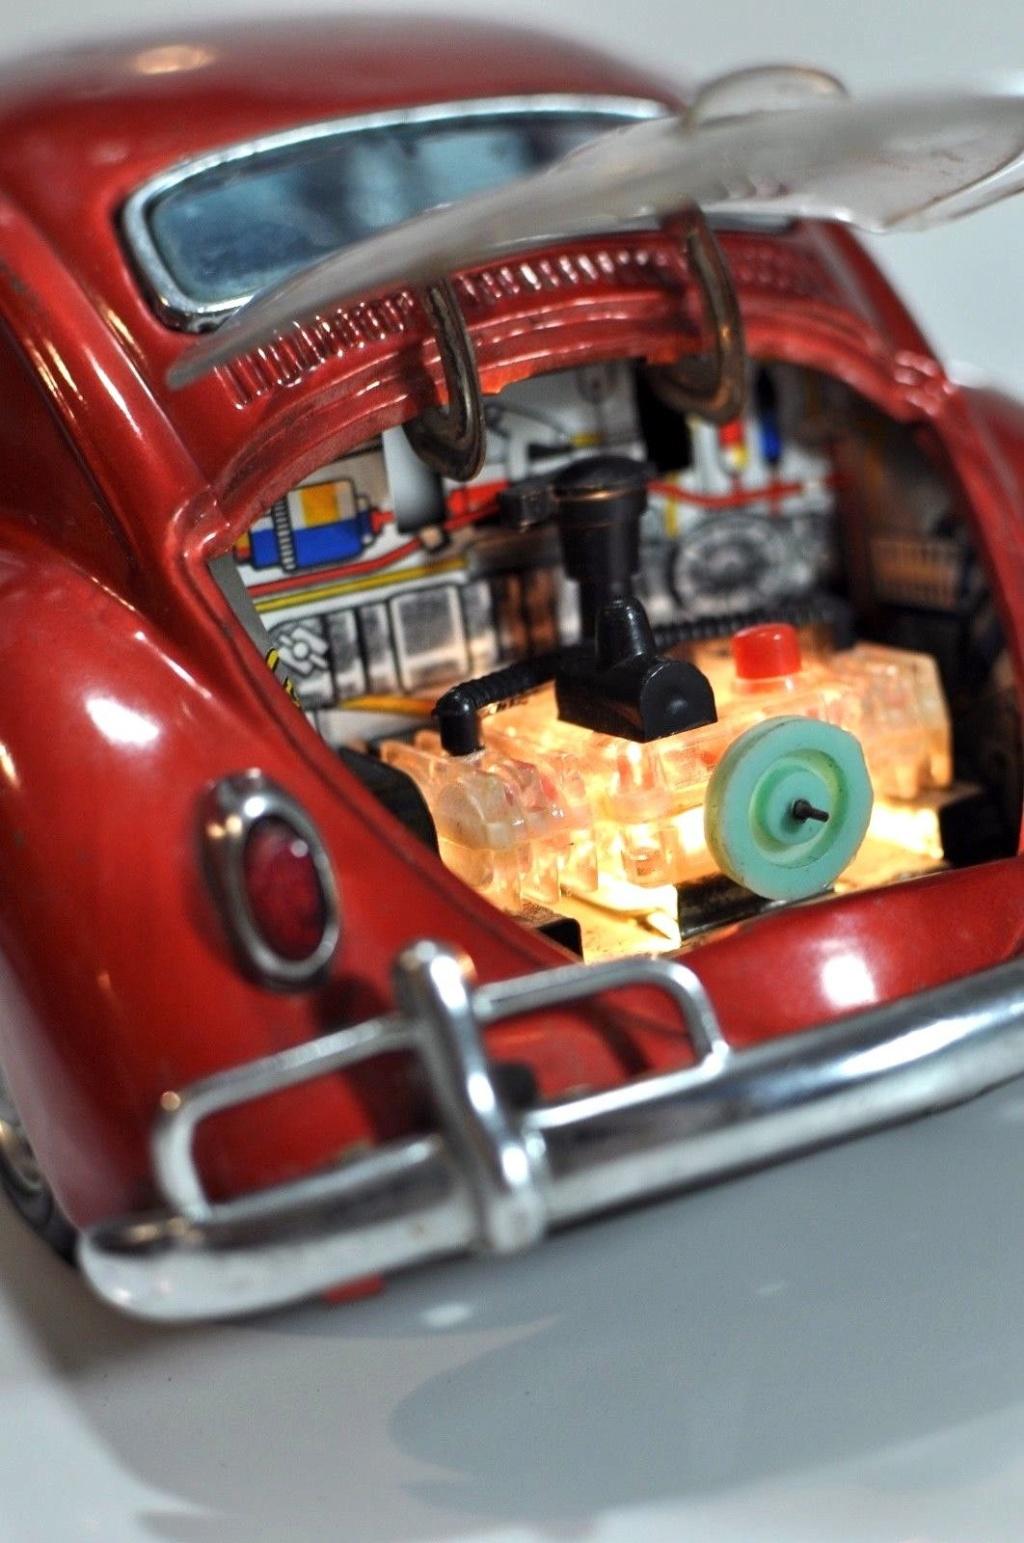 Volkswagen VW Beetle tin Bandai Japan bug toy car Vwb610